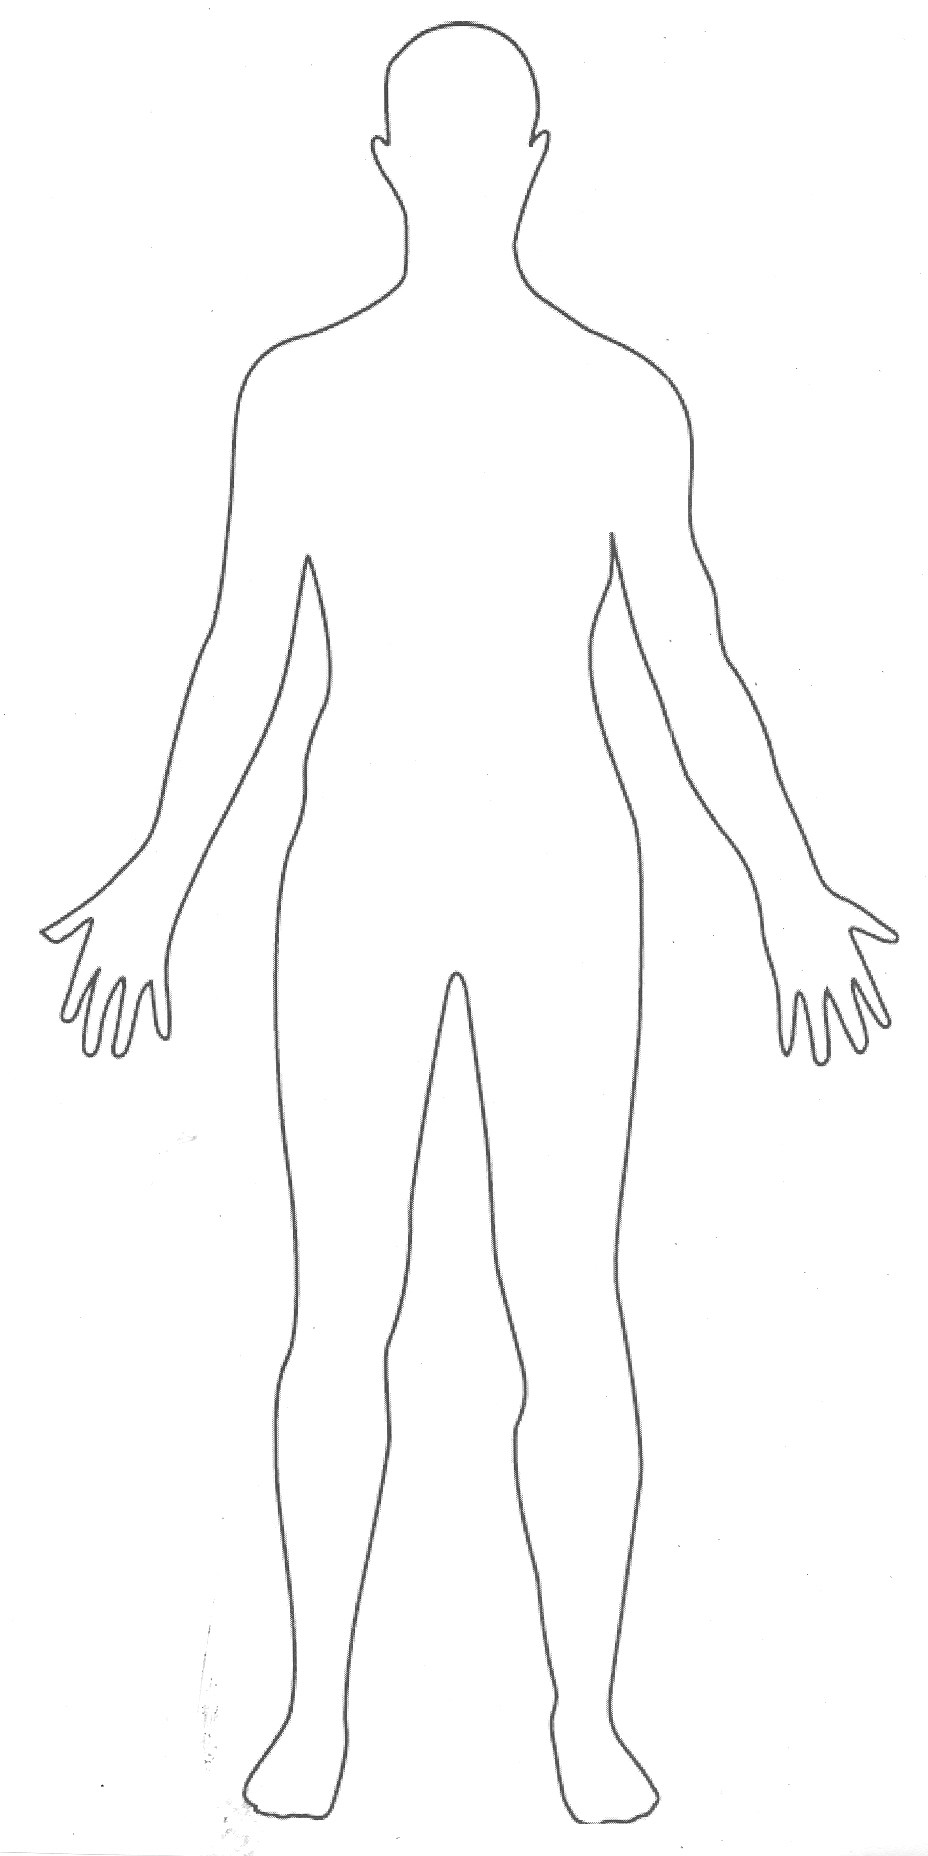 Body Outline Clipart & Body Outline Clip Art Images.